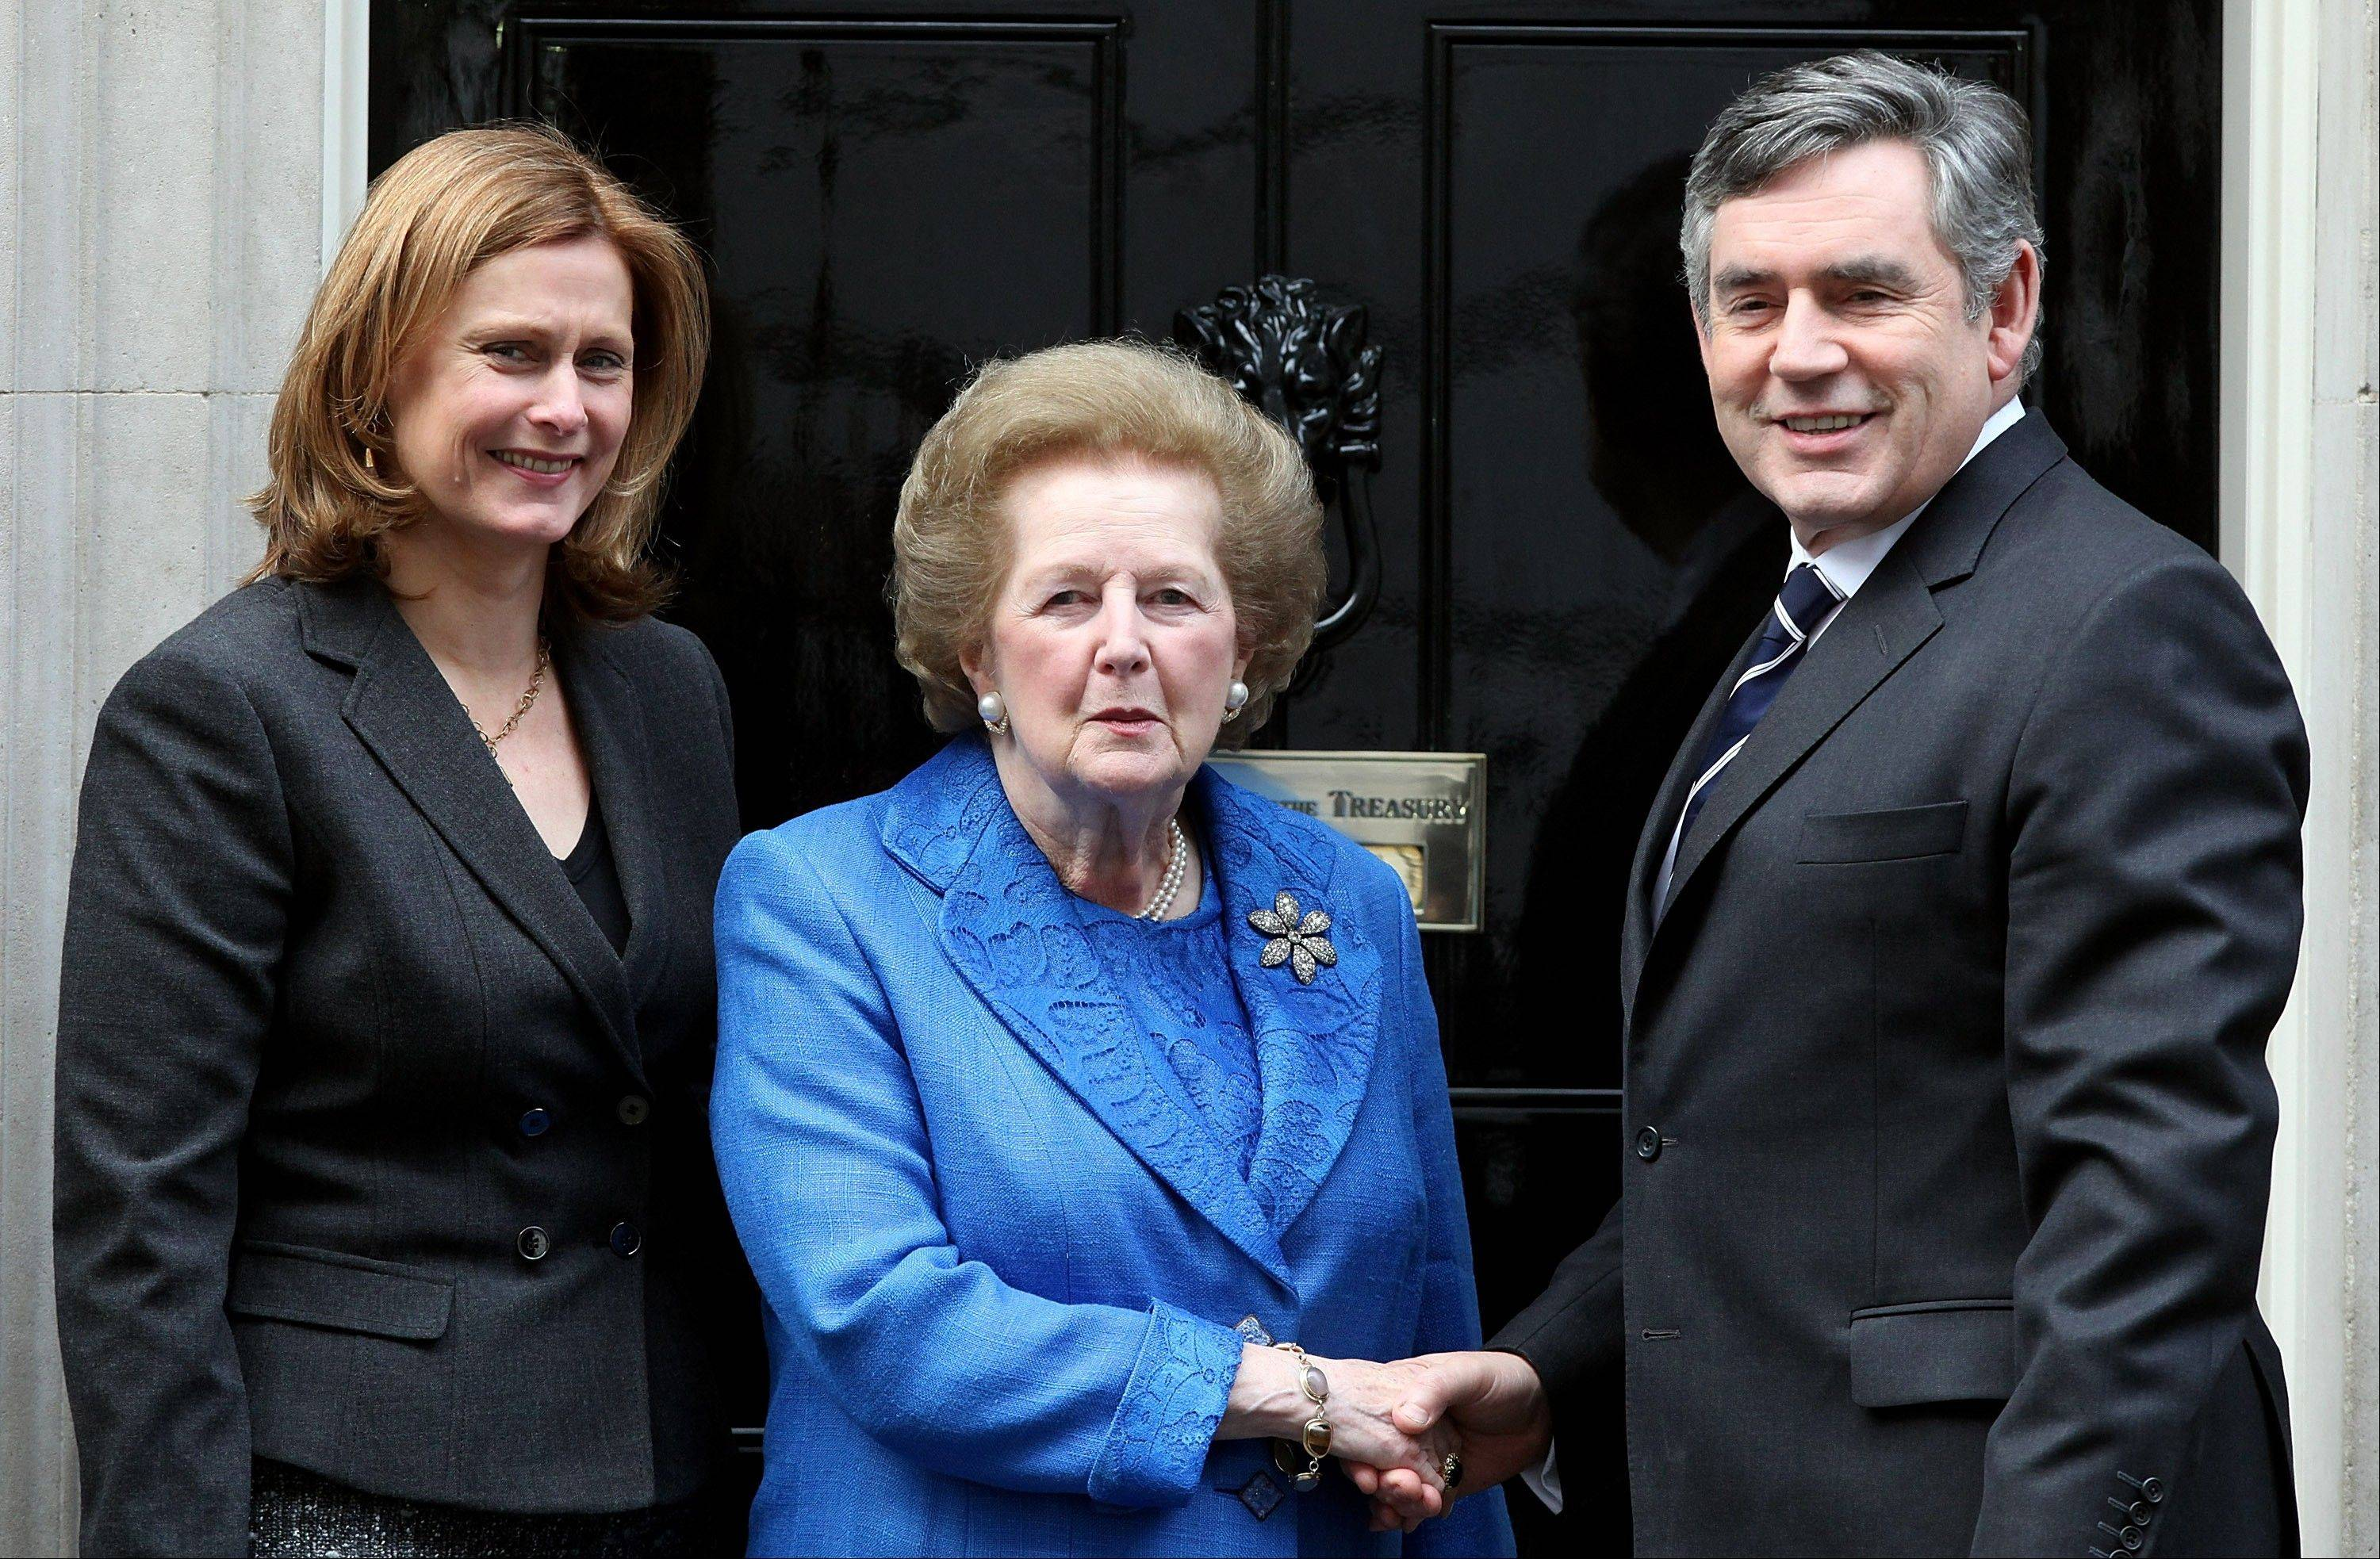 Gordon Brown, U.K. prime minister, right, and his wife Sarah, left, stand with Margaret Thatcher, the former U.K. Prime Minister, center, on the steps of 10 Downing Street, in London, U.K., on Monday, Nov. 23, 2009. Thatcher, the former U.K. prime minister who helped end the Cold War and was known as the �Iron Lady� for her uncompromising style, died today. She was 87.